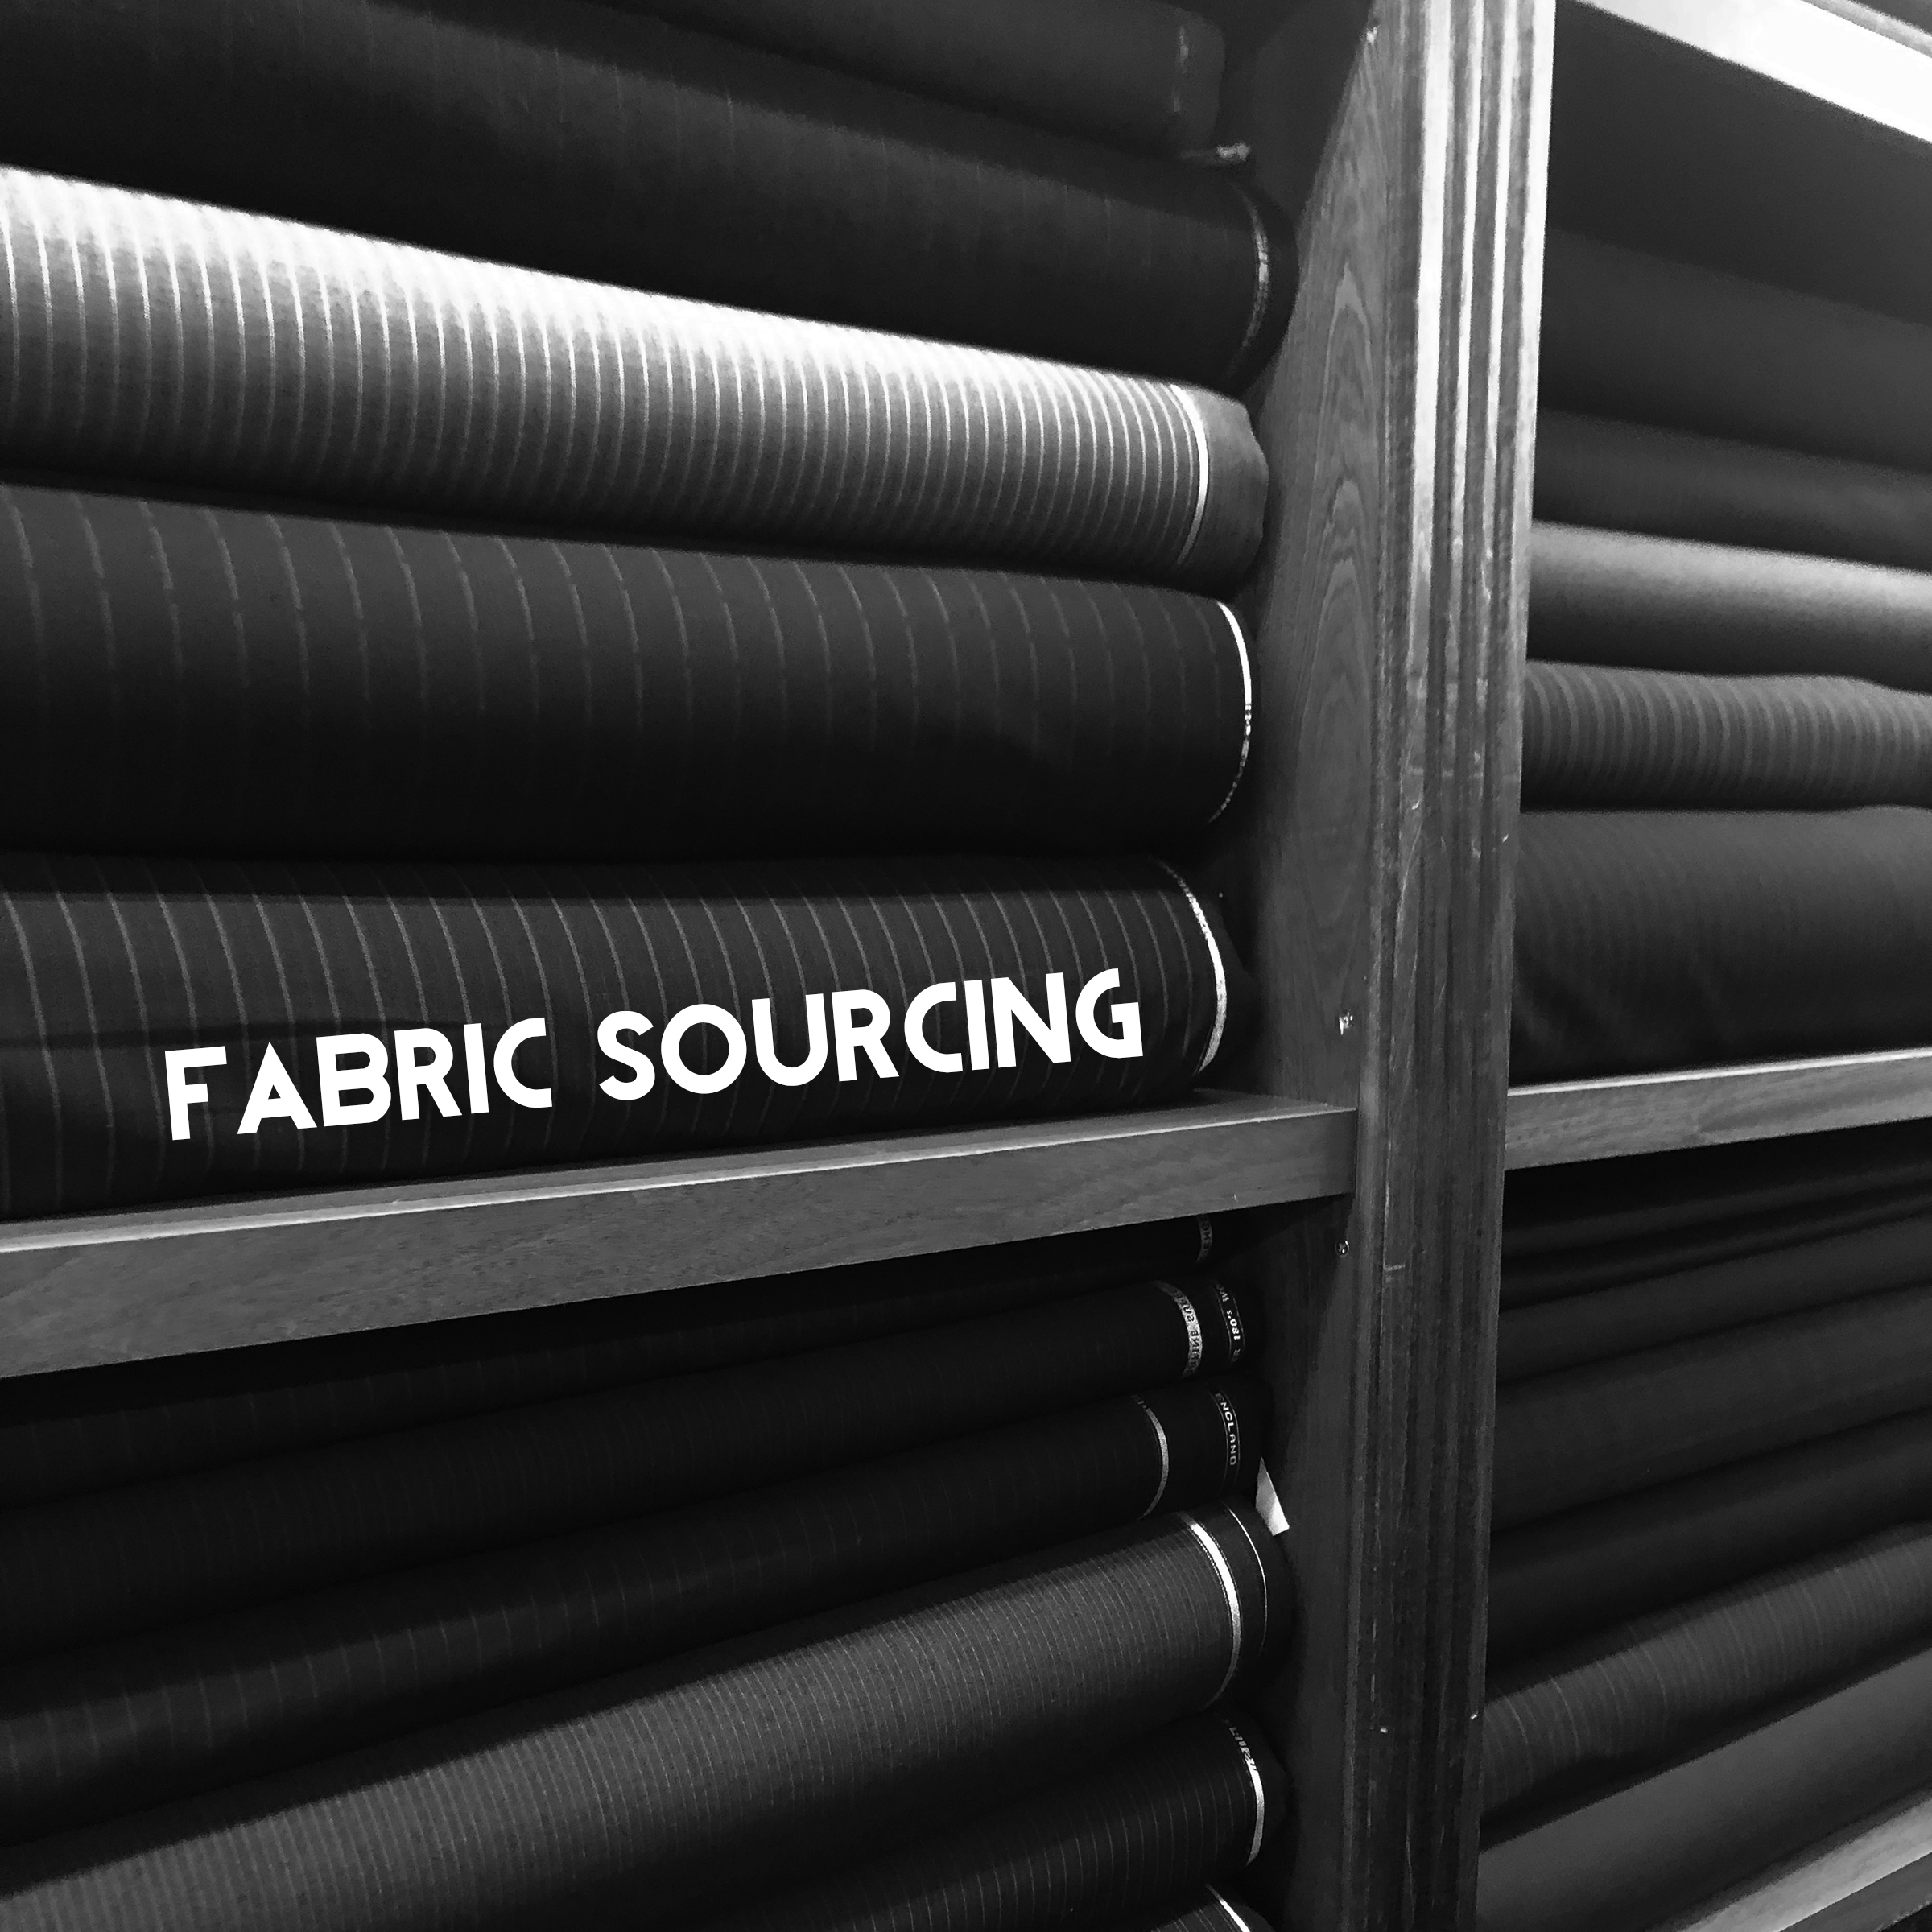 Fabric Vendors - We offer our prix fixe clients a comprehensive list of fabric and notion vendors, suppliers, and agents for both small and large production. We offer recommendations and introductions for clients and their specific needs.